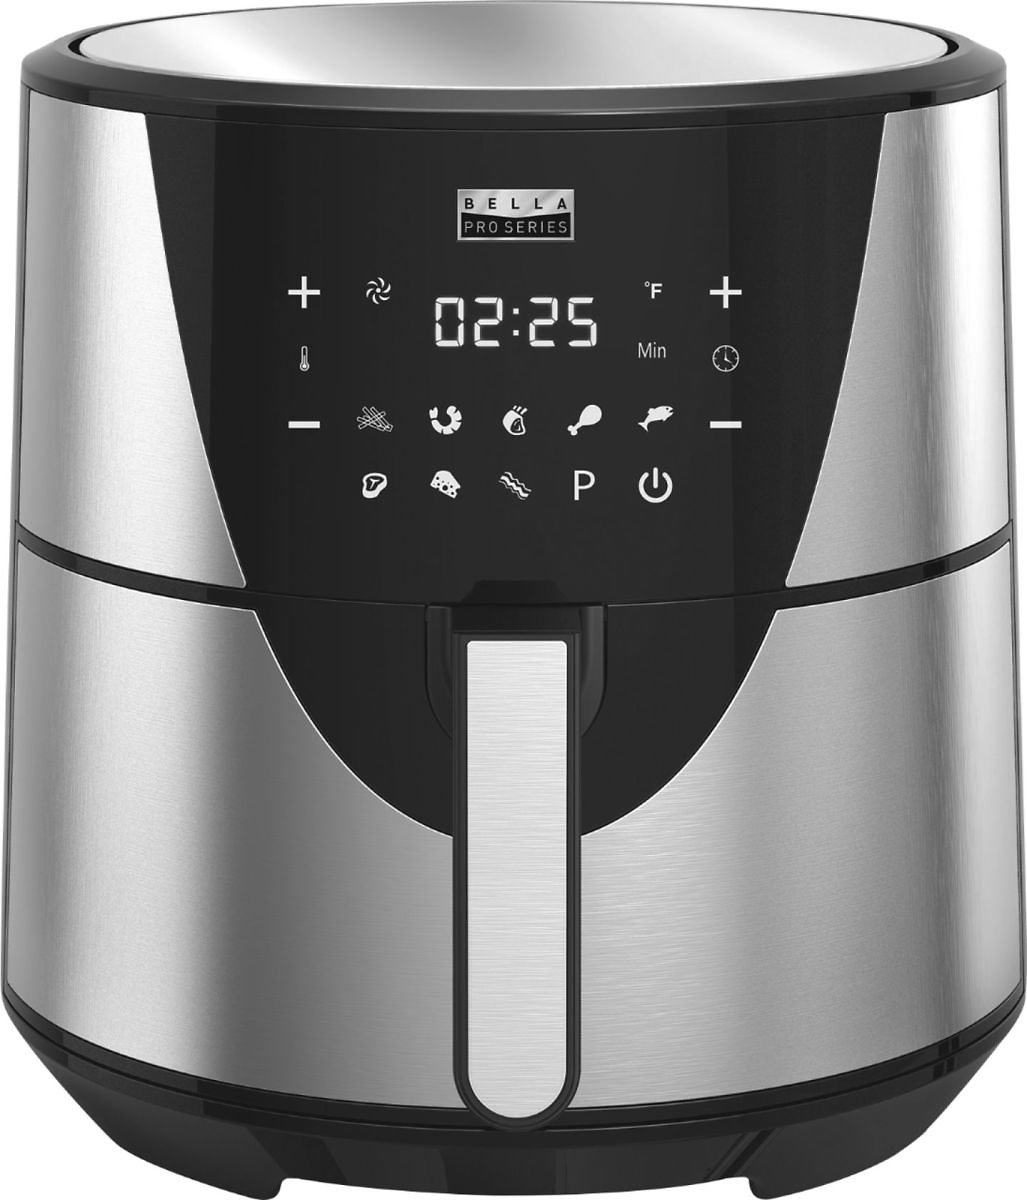 Today Only! Bella  PRO Series 8qt Digital Air Fryer  Stainless Steel + F/S